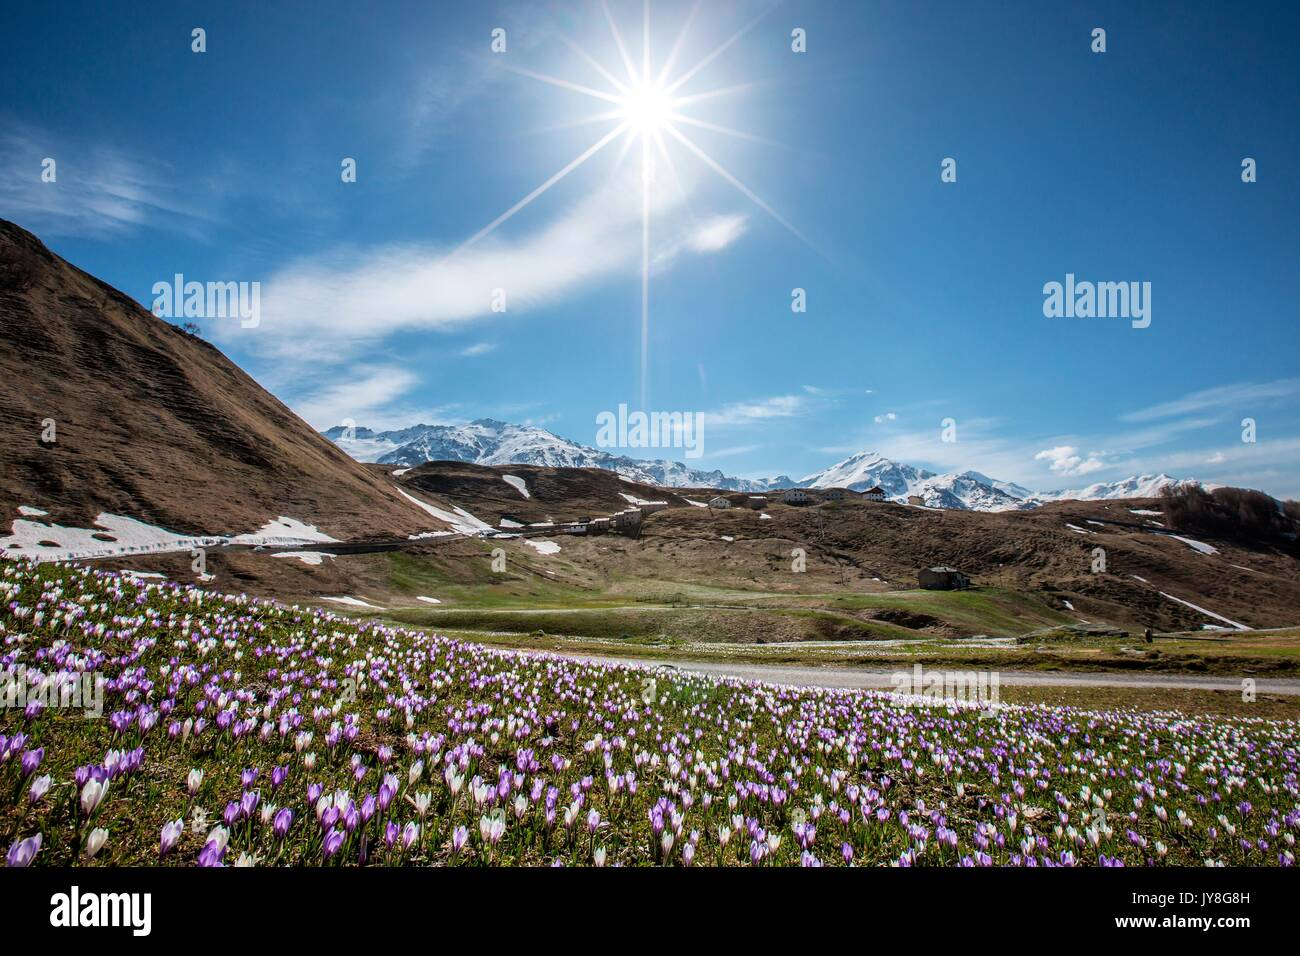 Crocus blooming in the fields in Andossi, Valchiavenna, Italy - Stock Image